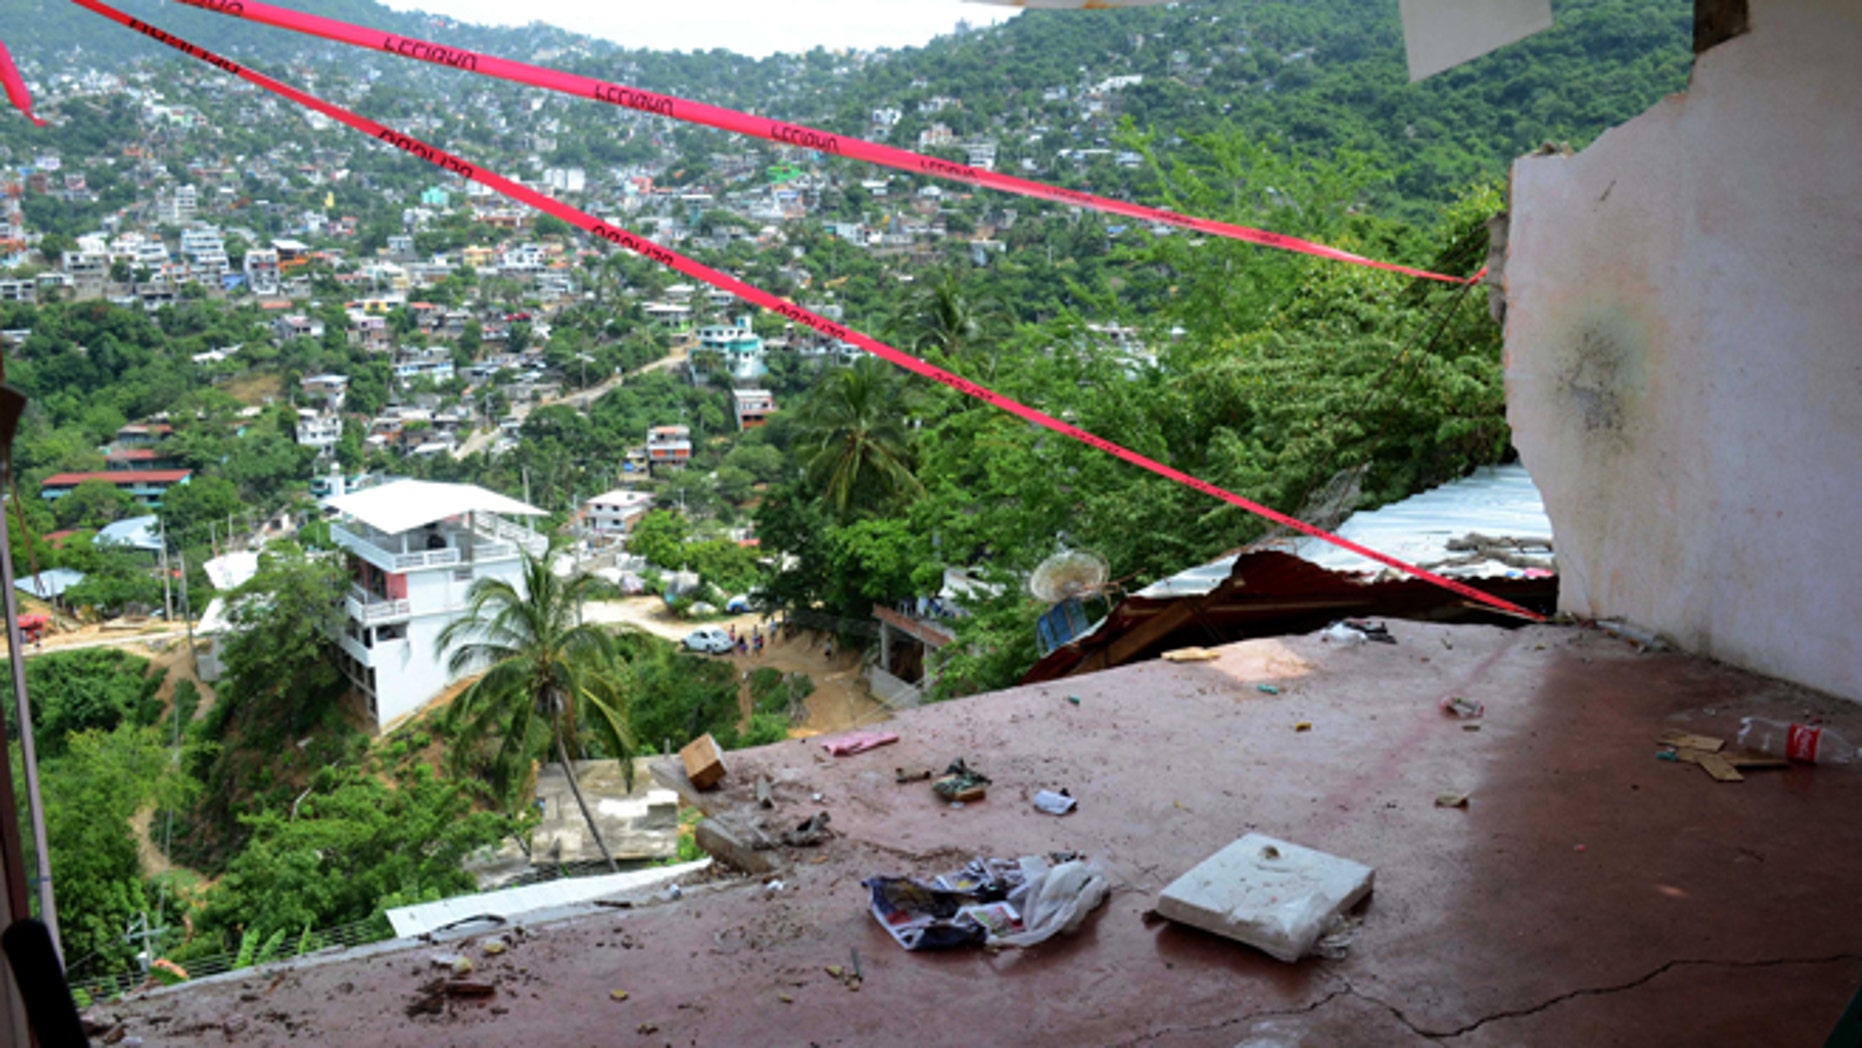 Aug 21, 2013: The wall of a home is missing after it fell during an earthquake in Acapulco. The U.S. Geological Survey said the quake had a magnitude of 6.2 and was centered on the Pacific coast, near the resort of Acapulco.